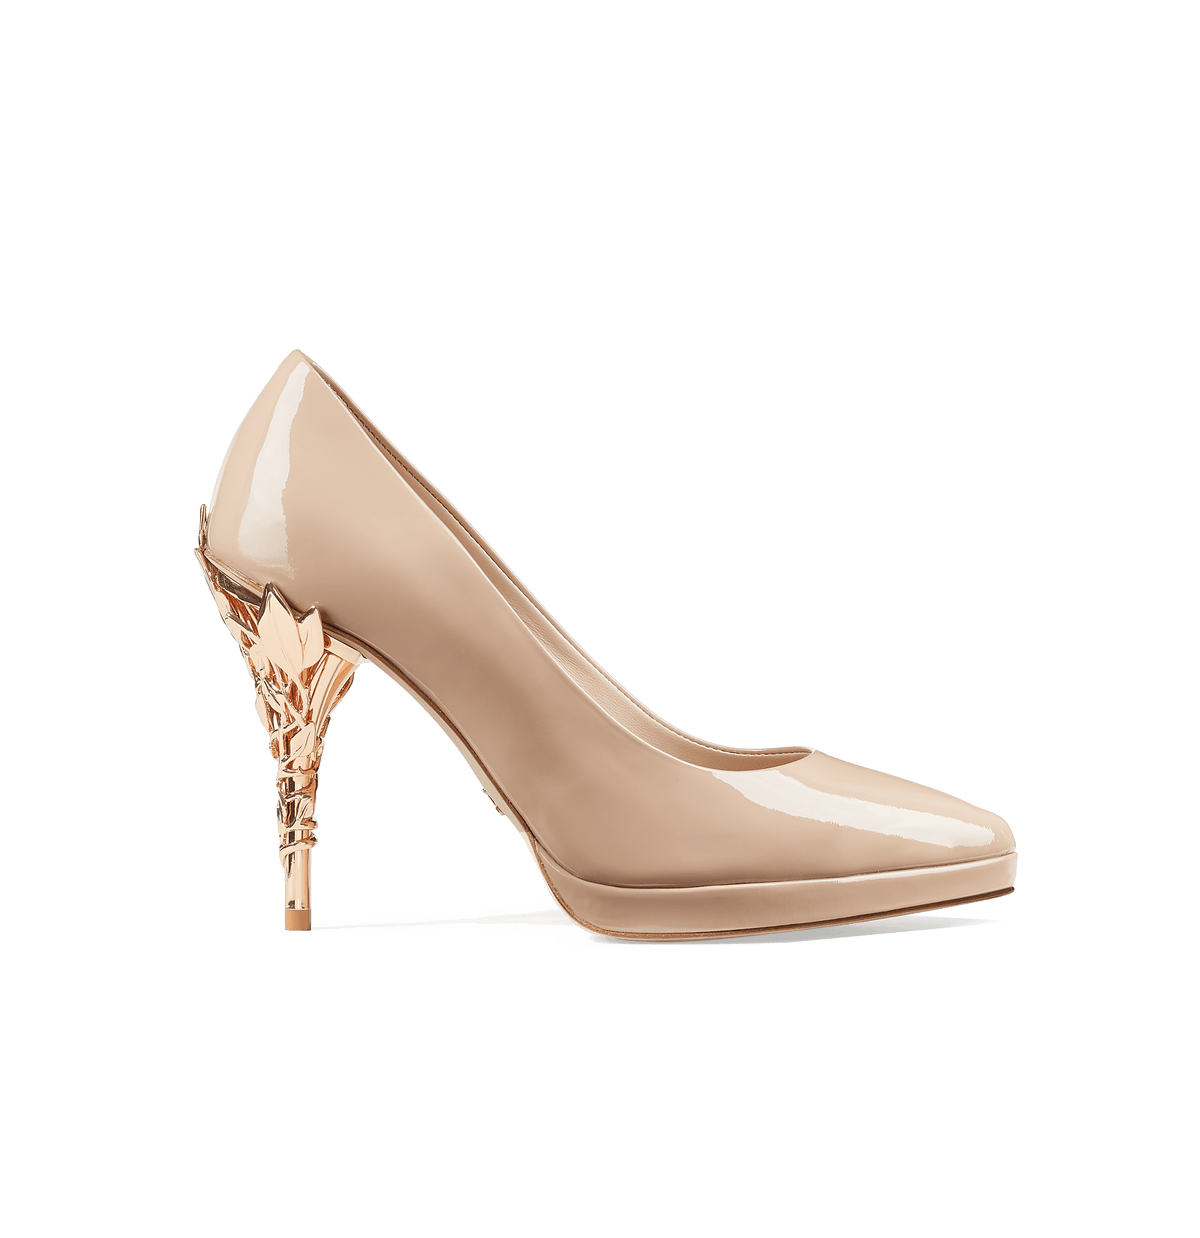 Nude Patent Leather Eden Platform Heels with Rose Gold Leaves